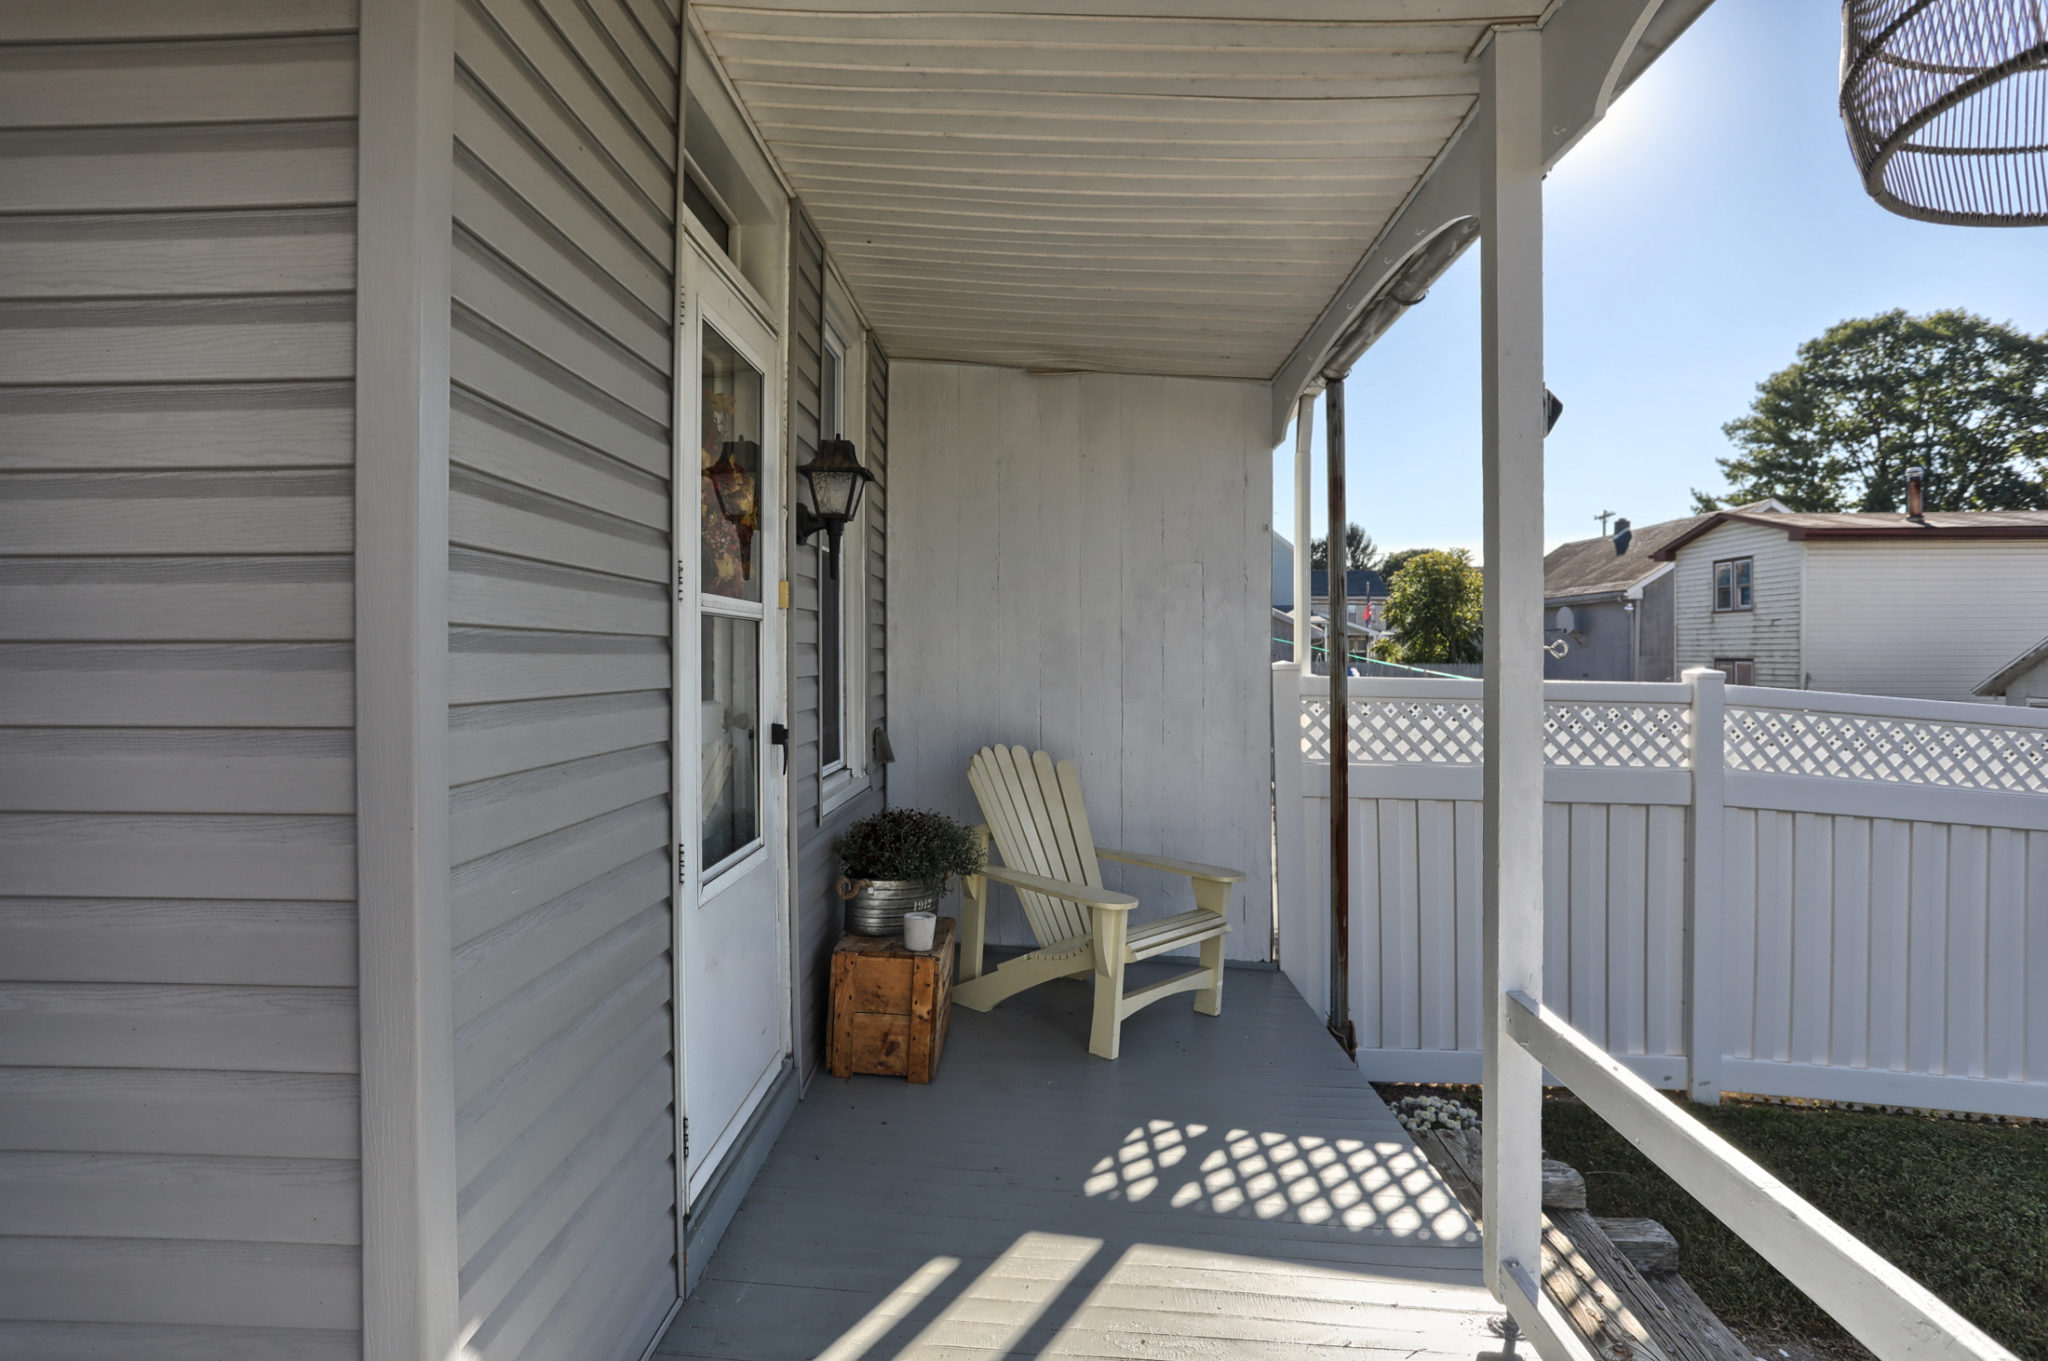 12 E. Maple Avenue - Back Porch of this Myerstown Home